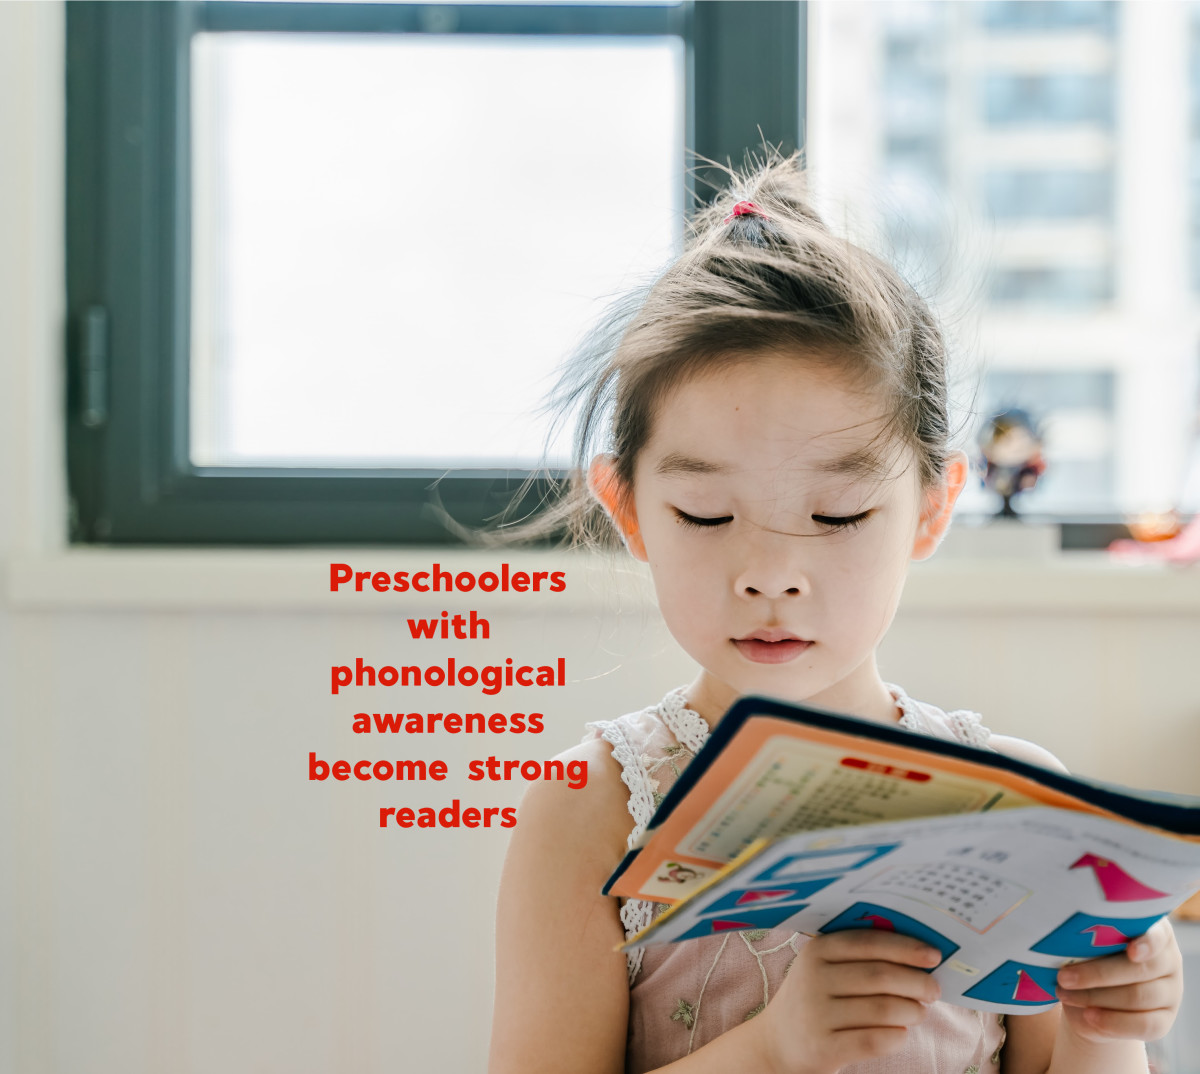 Research shows that children who can detect the individual sounds in words are more likely to become competent readers, writers, and spellers.